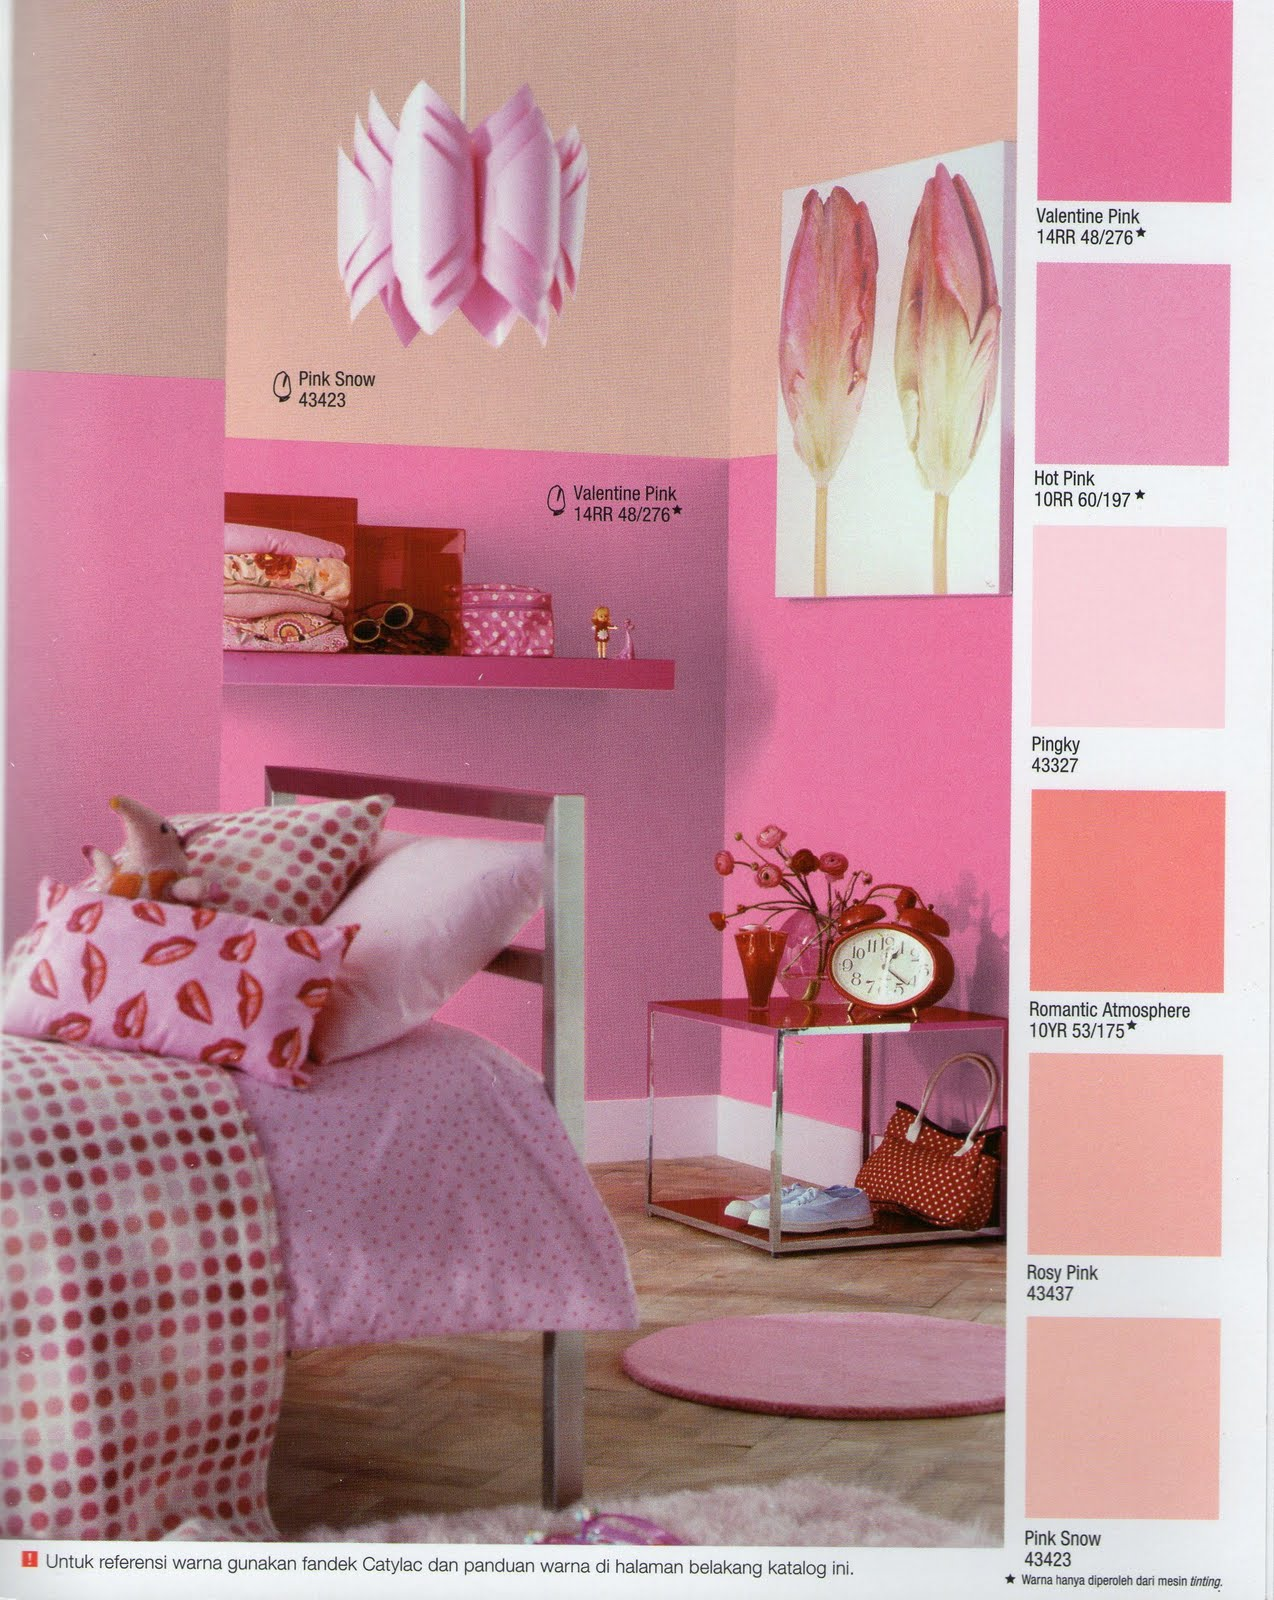 Kumpulan Catylac Katalog Warna Ask Home Design - www ...